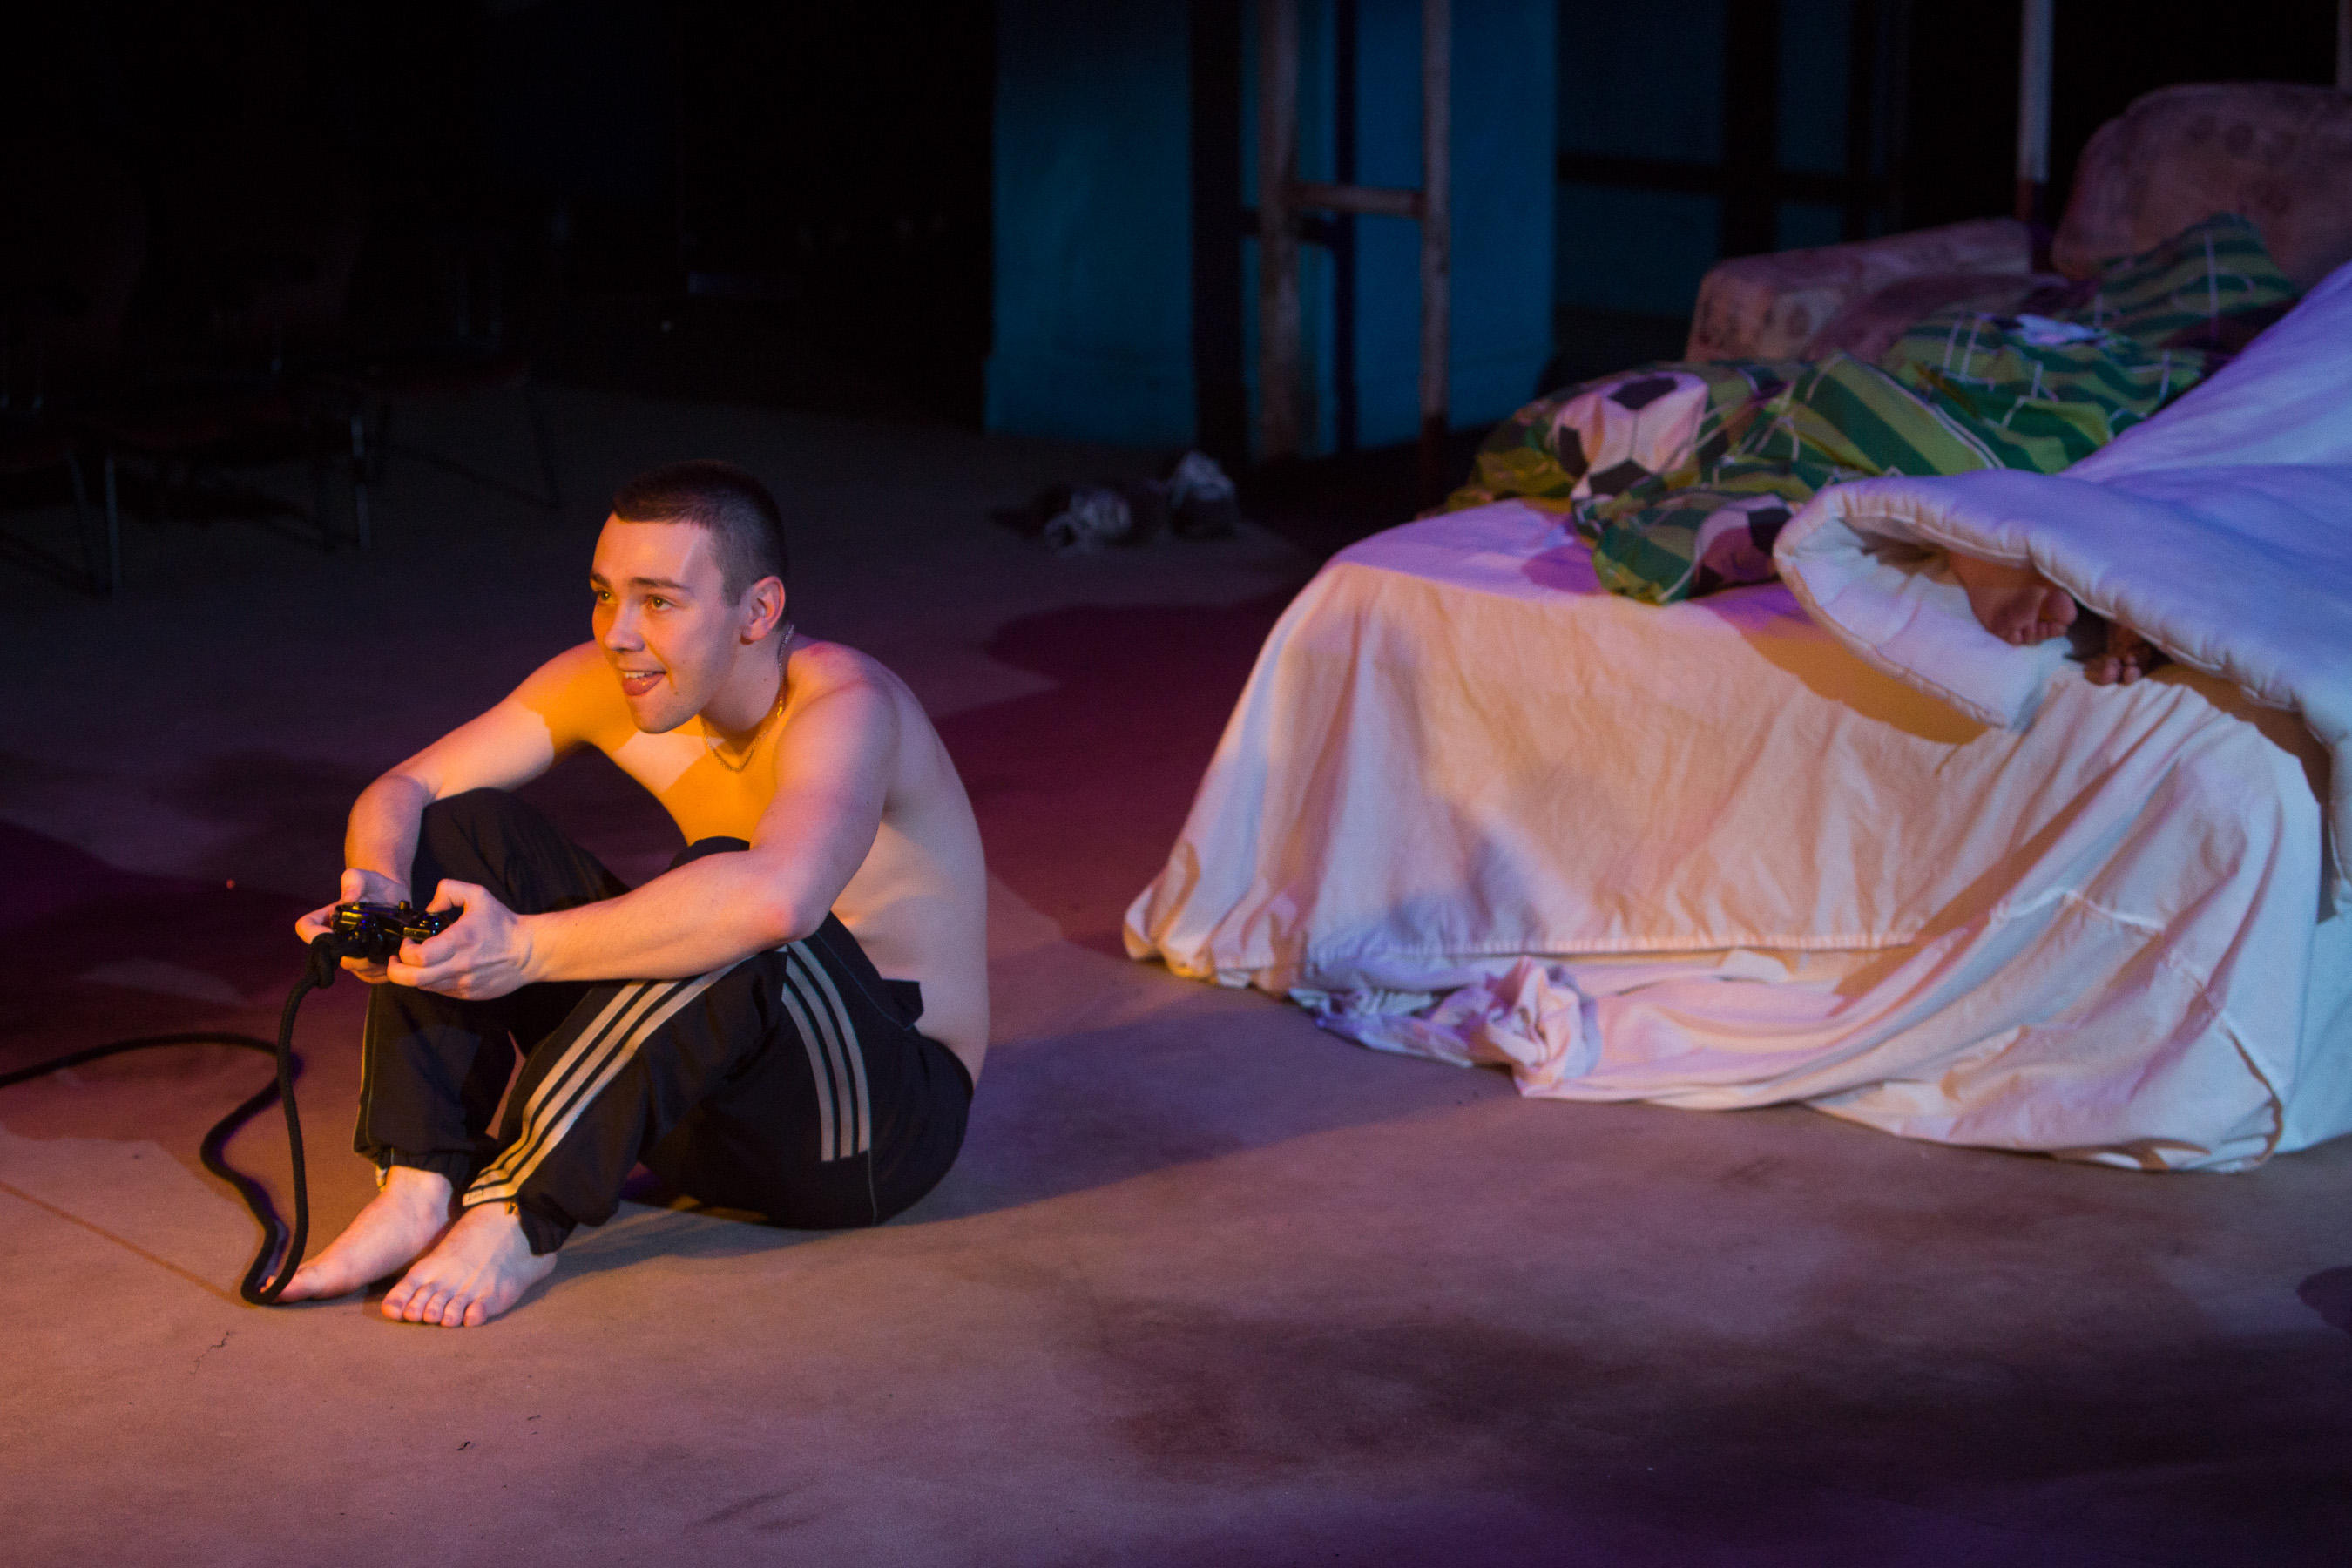 12 Jake Davies as Bobby in YEN by Anna Jordan (The Studio, Royal Exchange Theate until 7 March). Photo - Jonathan Keenan